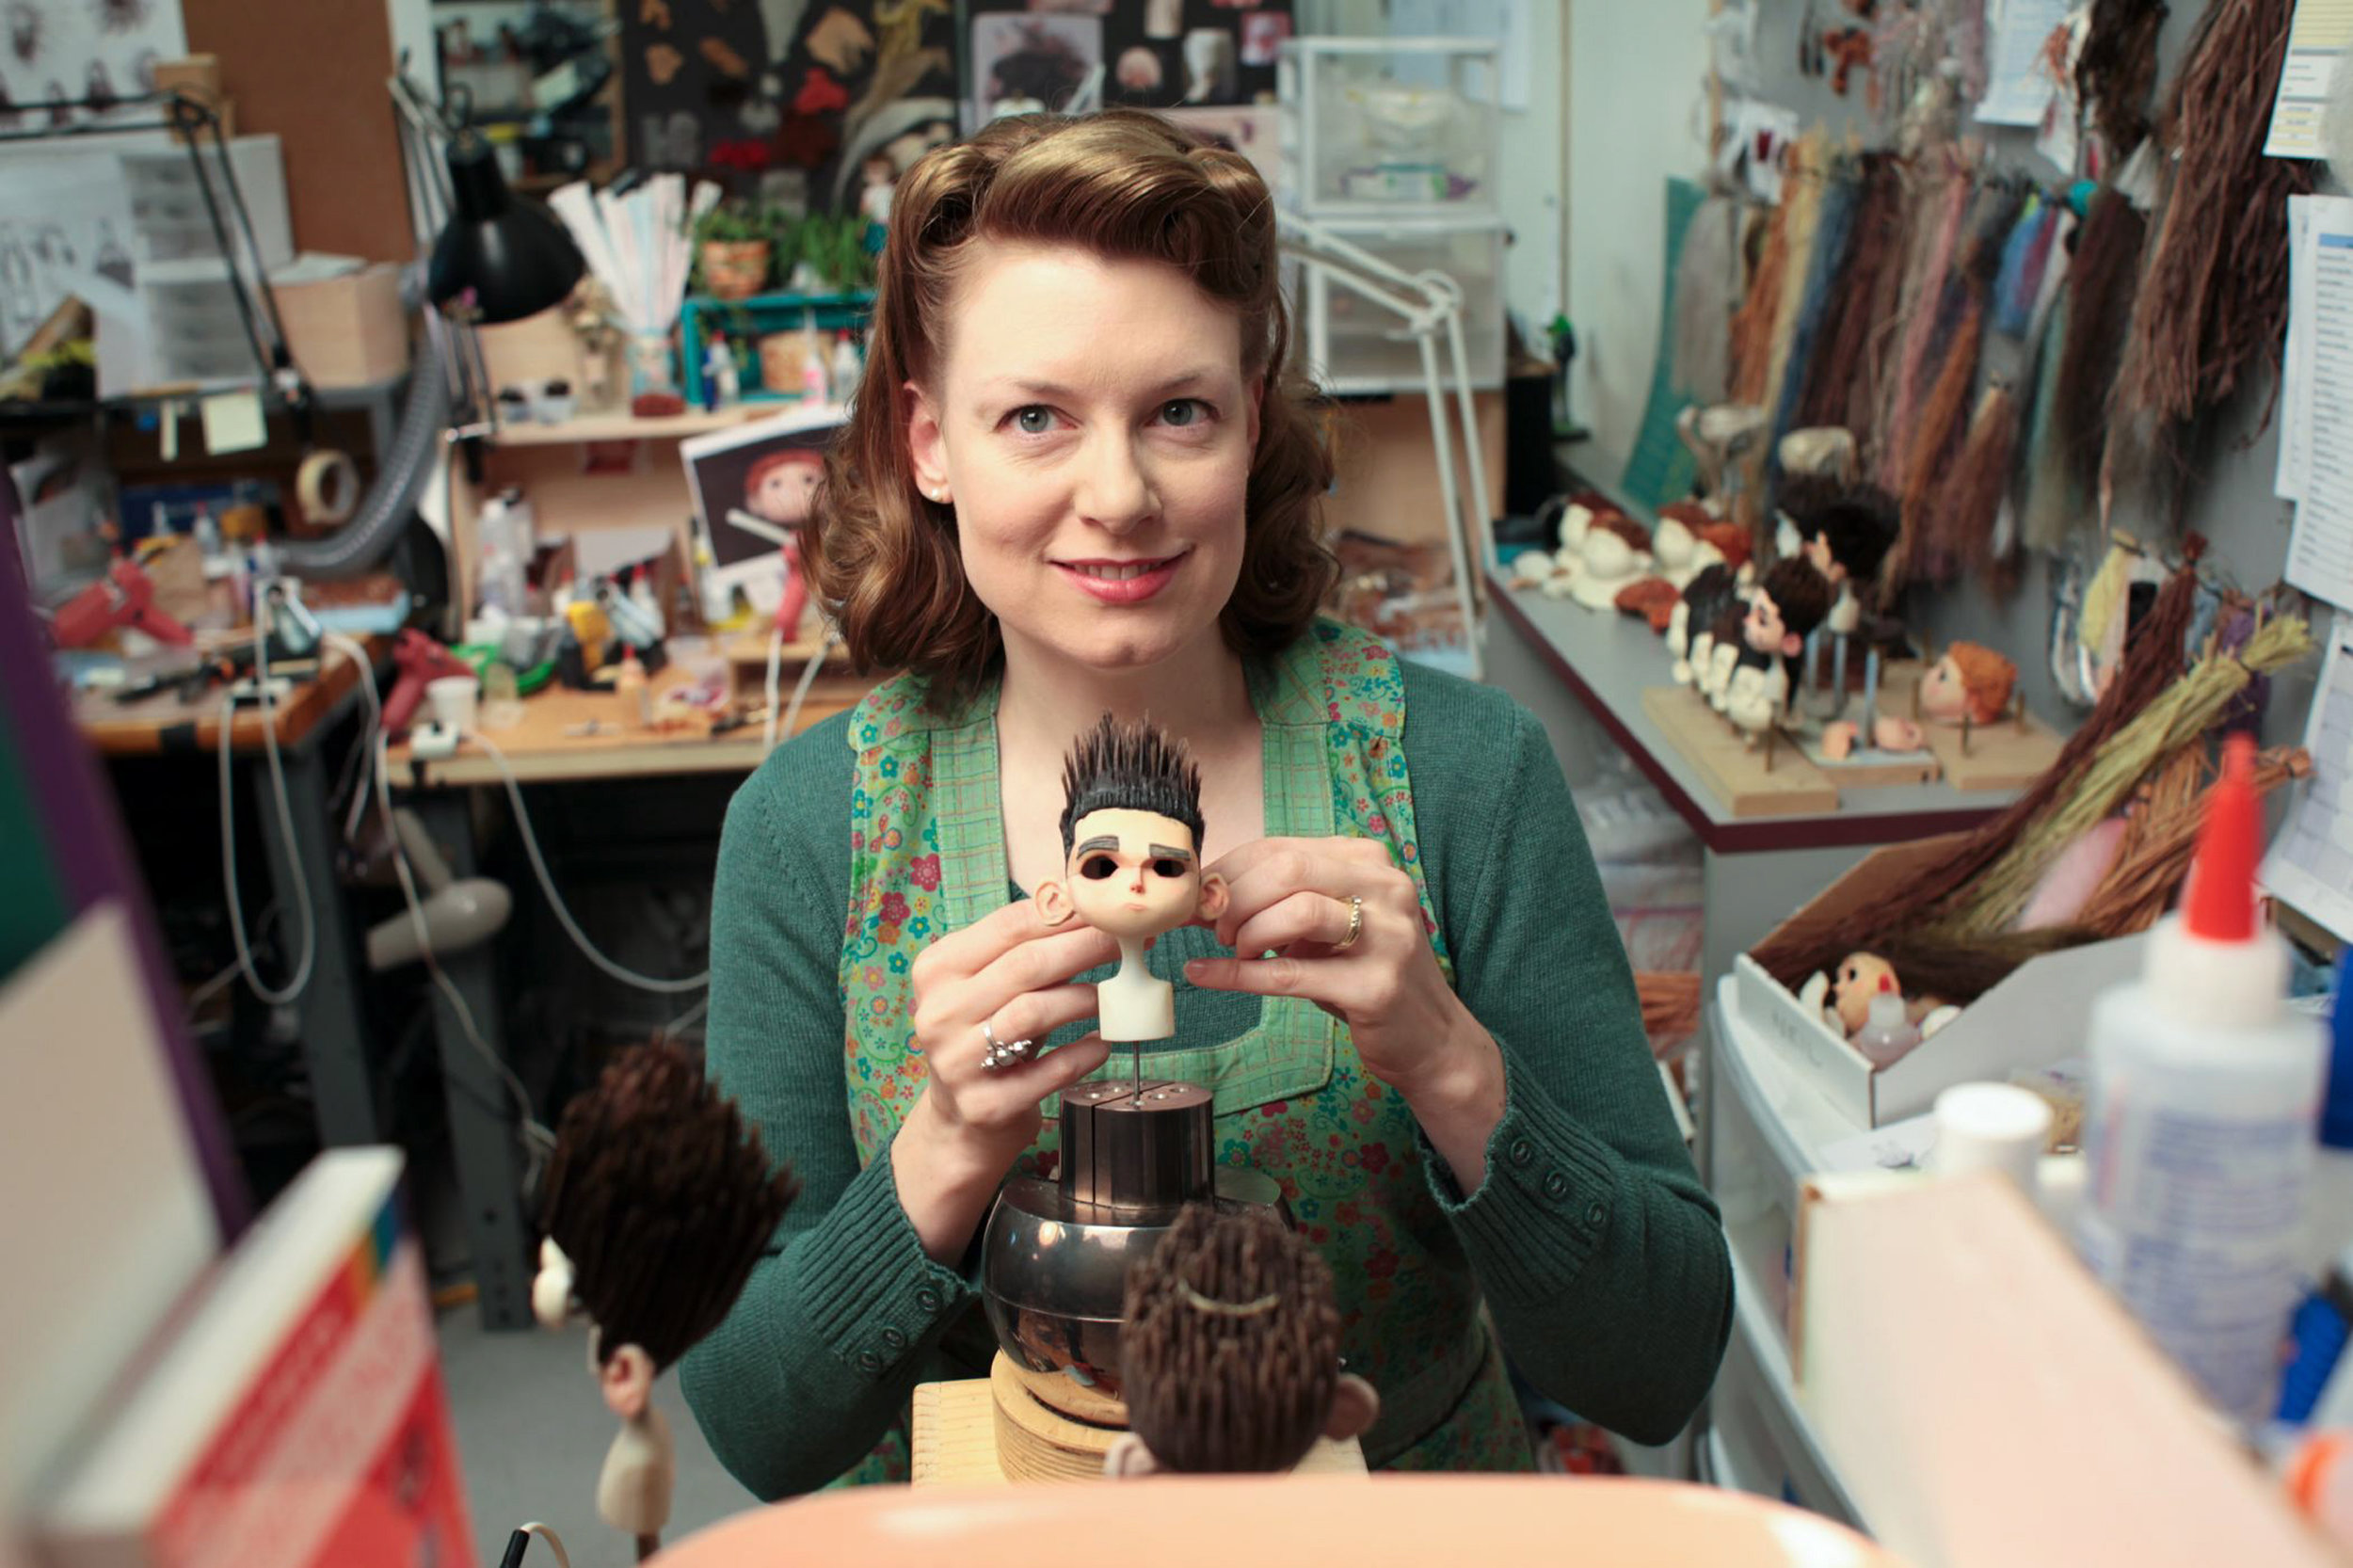 Kristen Riehl holds up Norman-in-progress for ParaNorman, the new 3D stop-motion comedy thriller.  Credit: LAIKA, Inc.